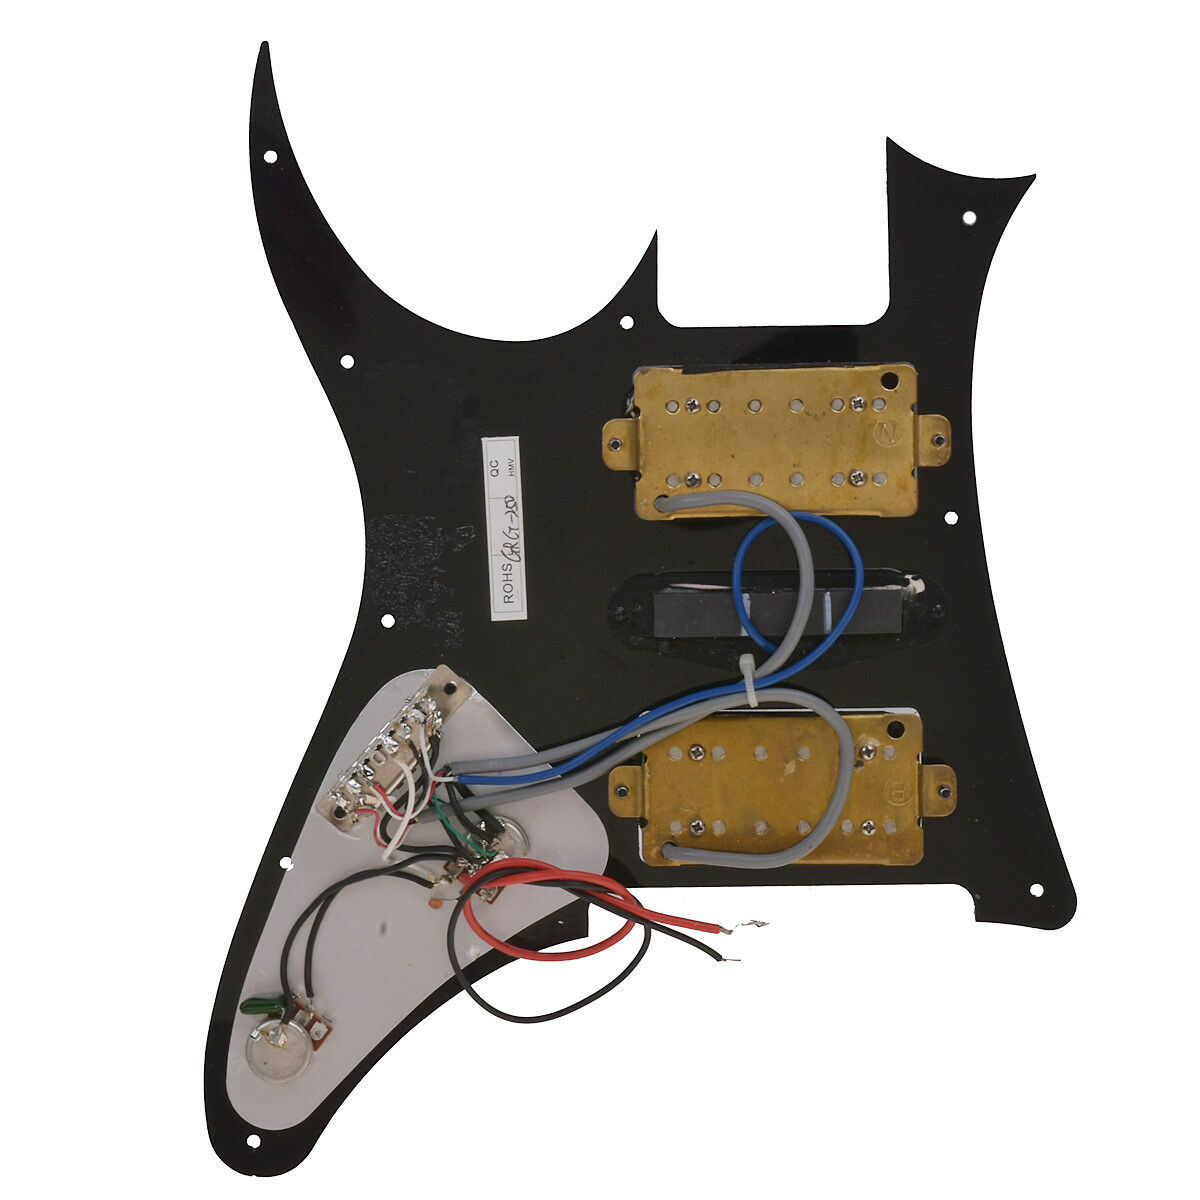 Loaded Prewired Pickguard For Ibanez Grg250 Electric